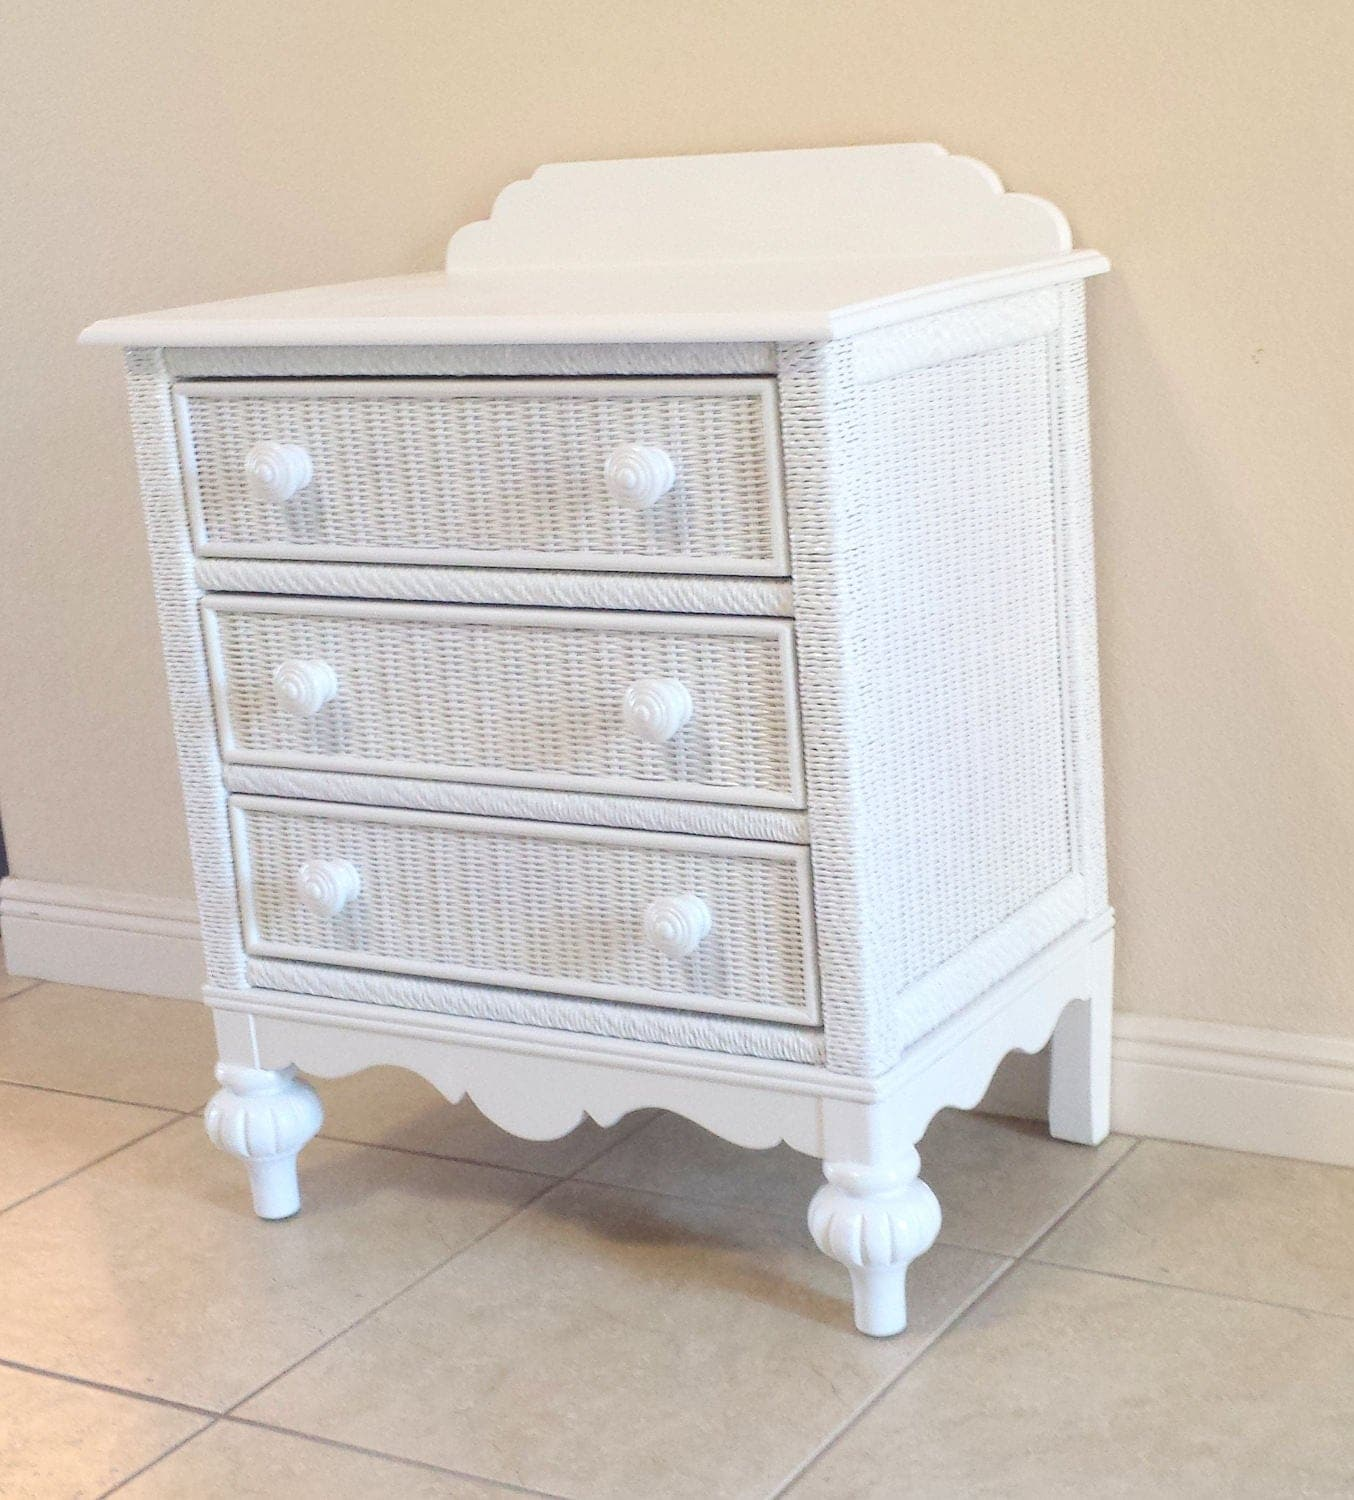 #7B6650 White Lexington Wicker 3 Drawers Chest Commode. with 1354x1500 px of Highly Rated White Wicker Chest Of Drawers 15001354 picture/photo @ avoidforclosure.info